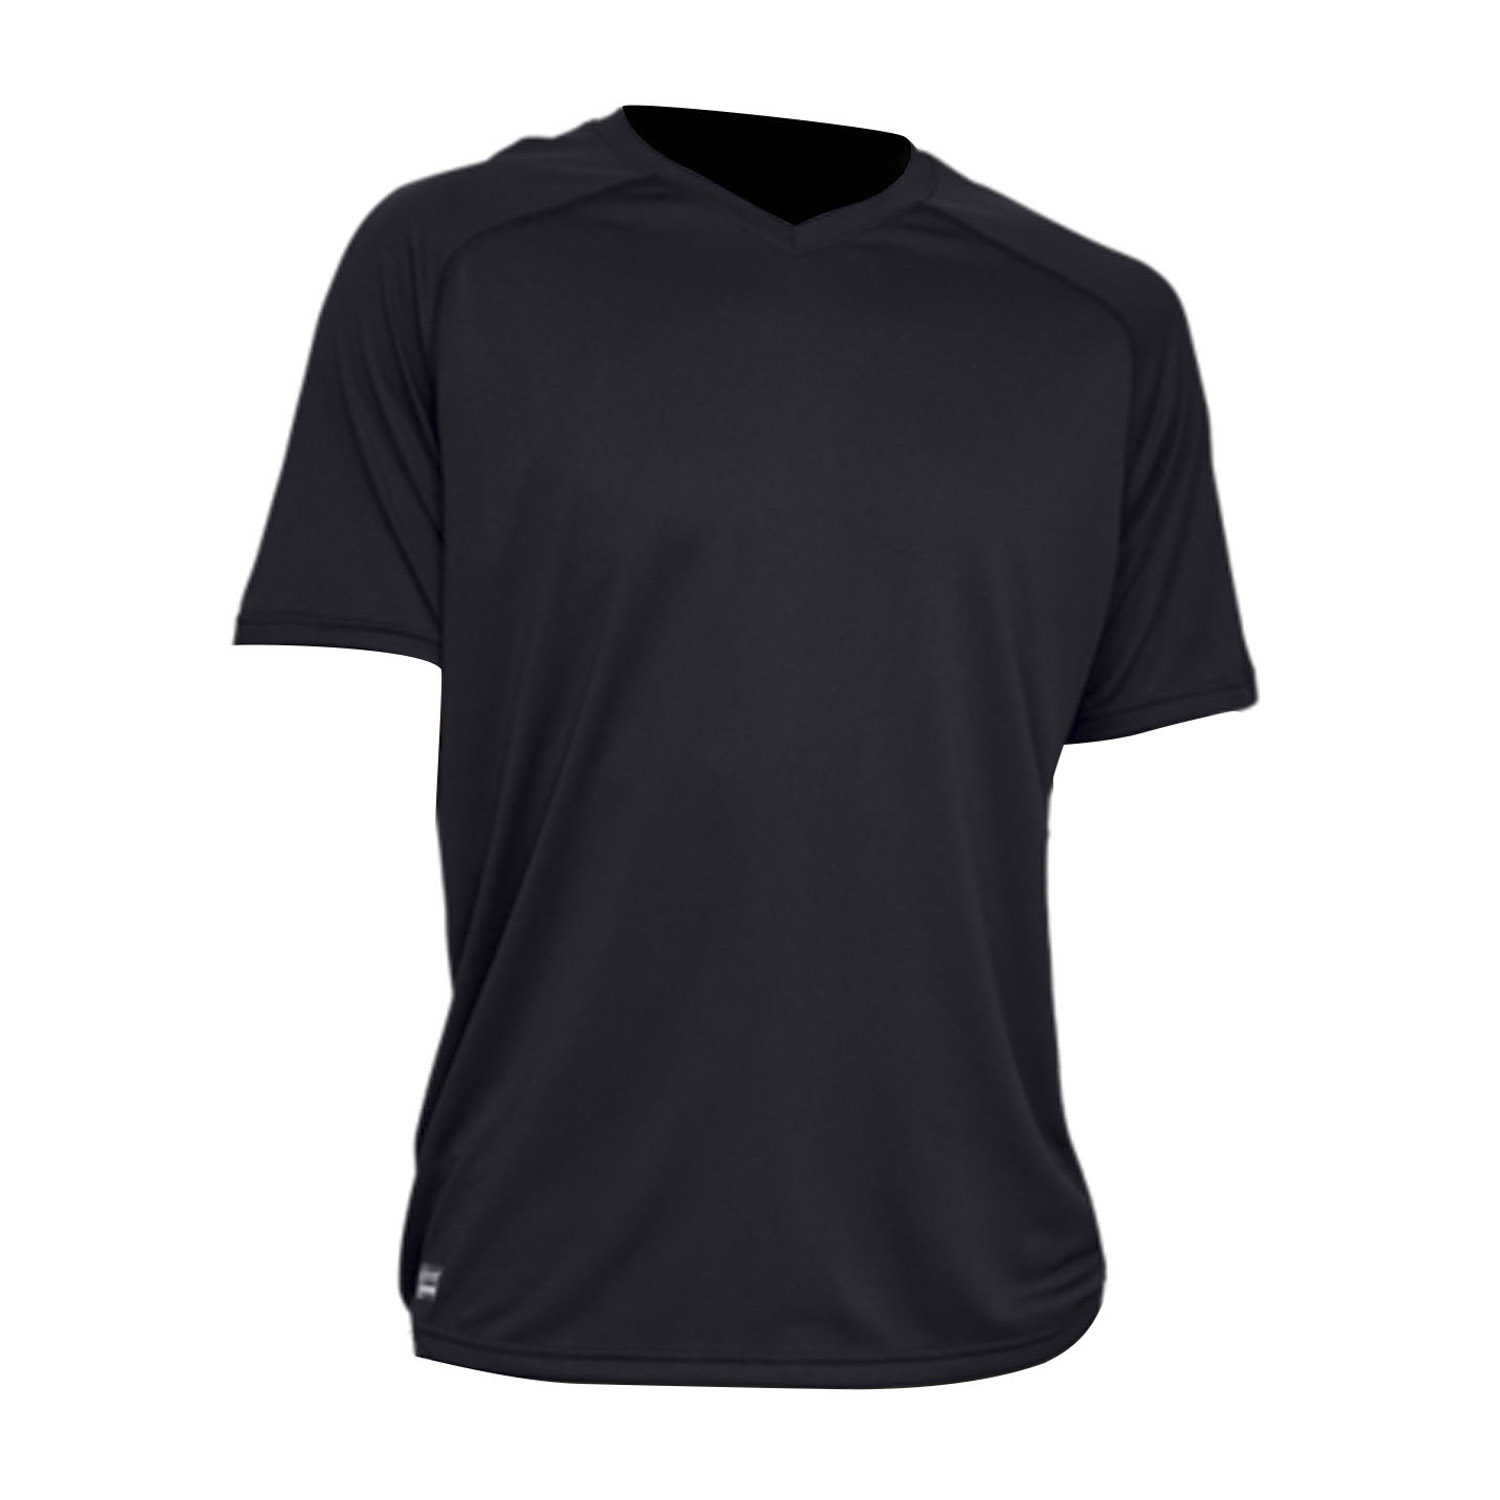 Under Armour M Tac Tech V-Neck Short Sleeve Shirts